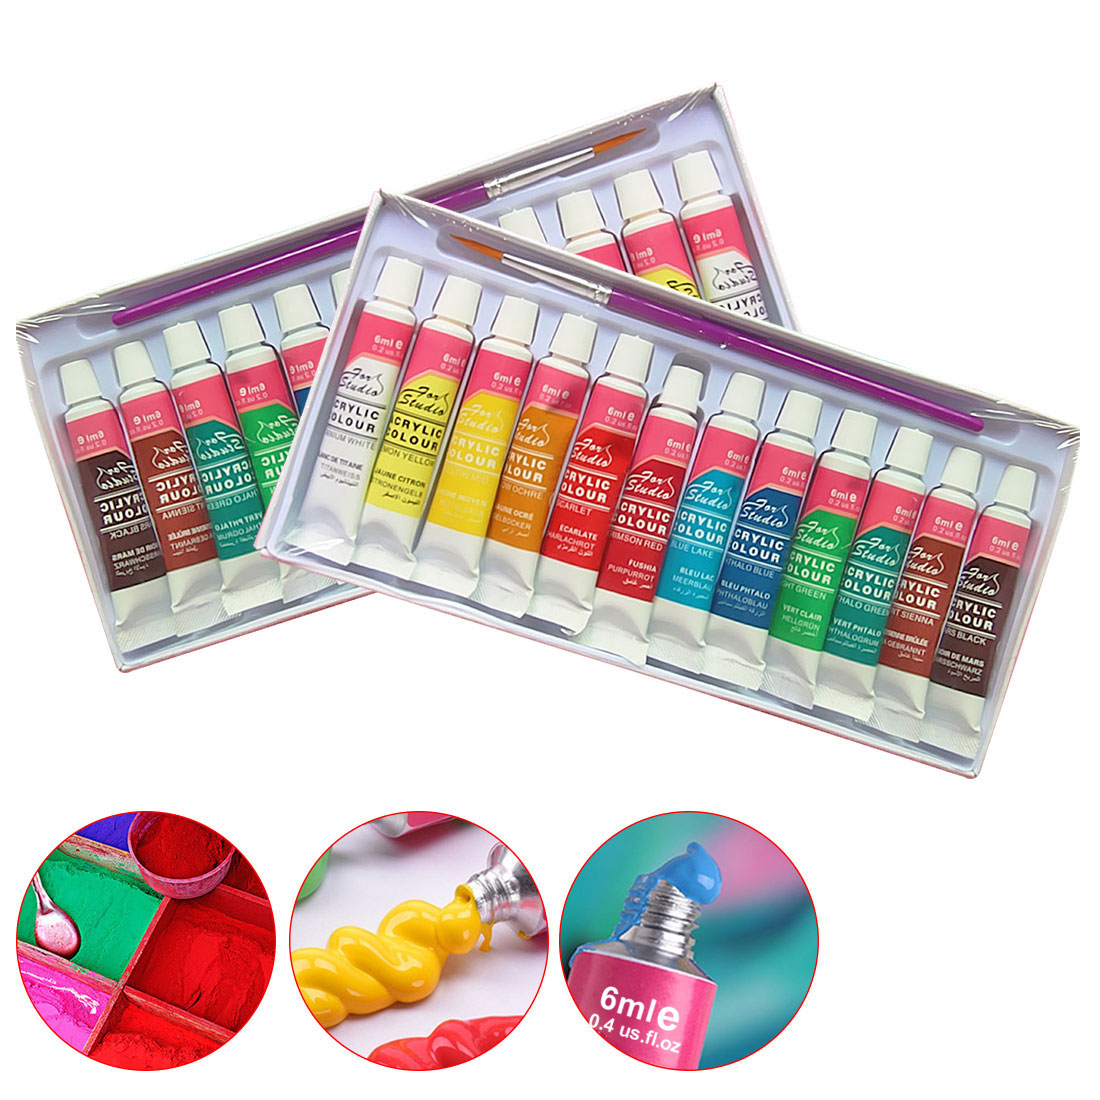 FangNymph 12 Colors Professional Acrylic Paint Set 6ML Acrylic Pigment Hand Painted Textile Wall Nail Wood Painting Art Supplies